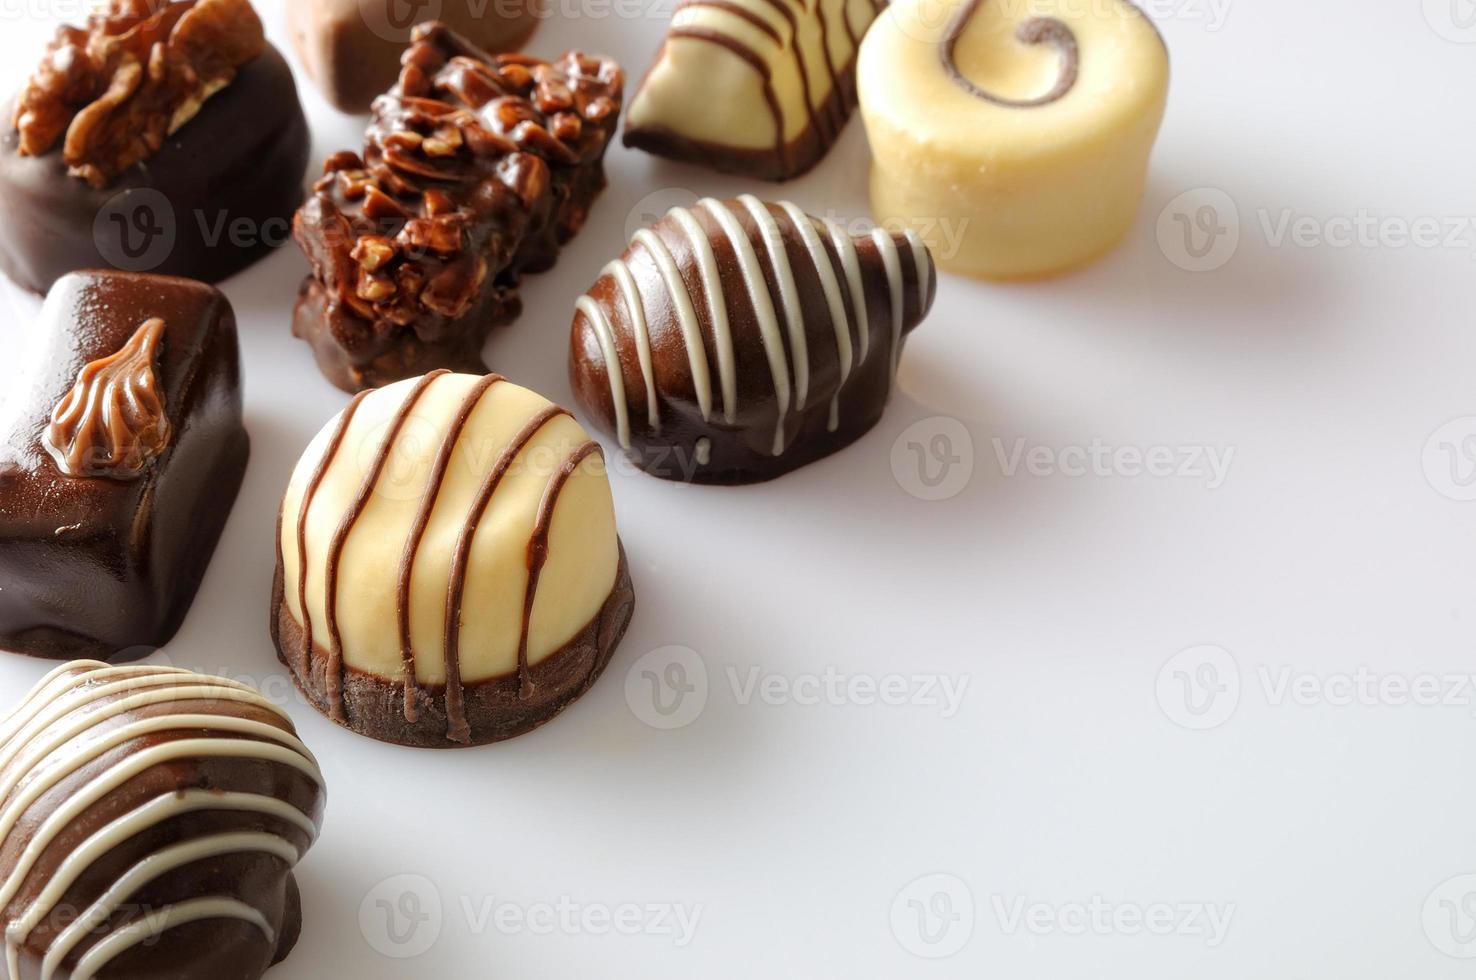 Assorted bonbons on a white table Top diagonal aligned photo